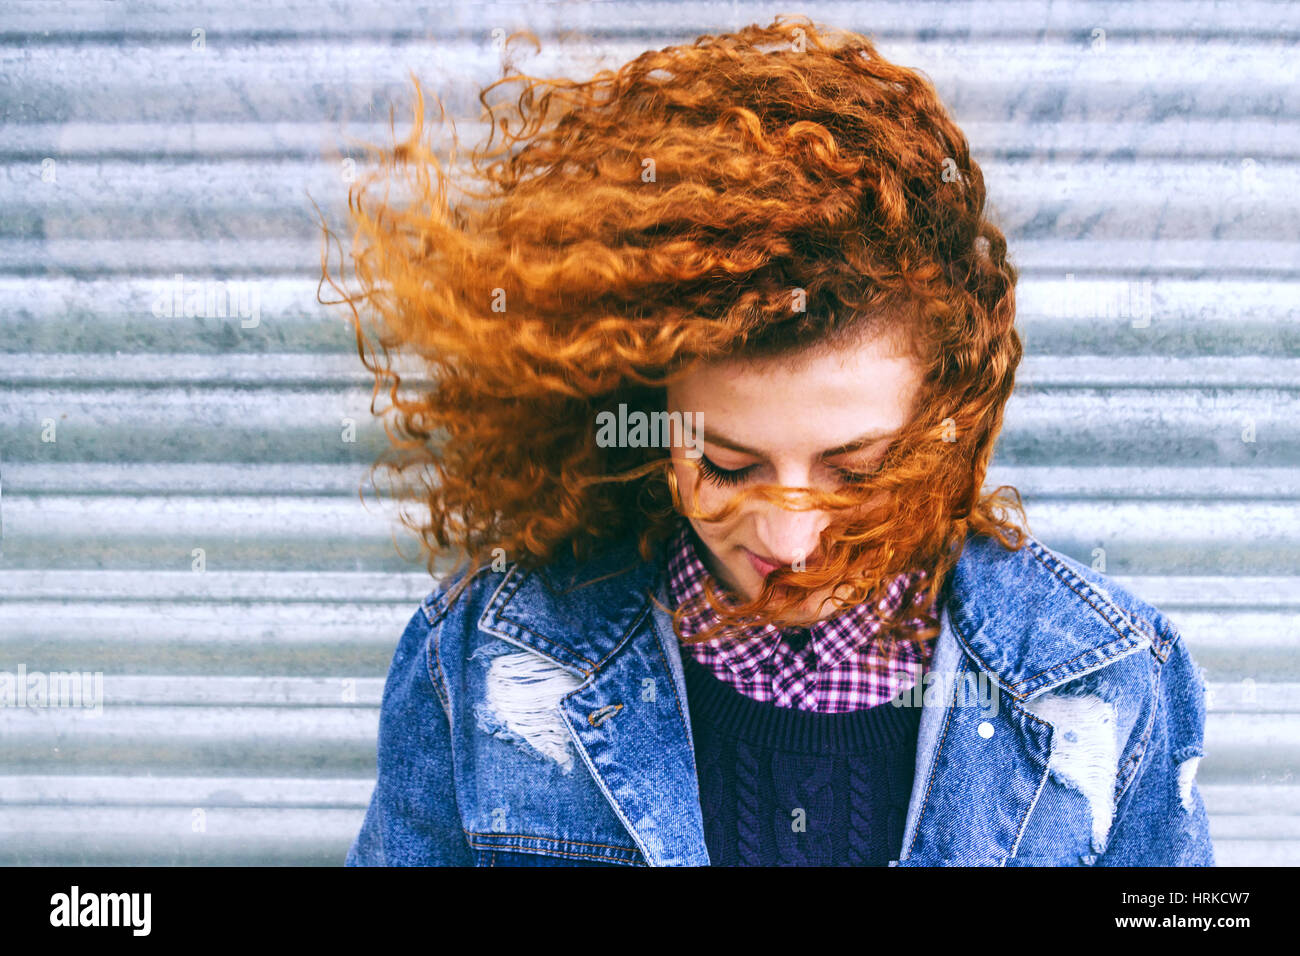 Portrait of a beautiful redhead teenager Stock Photo